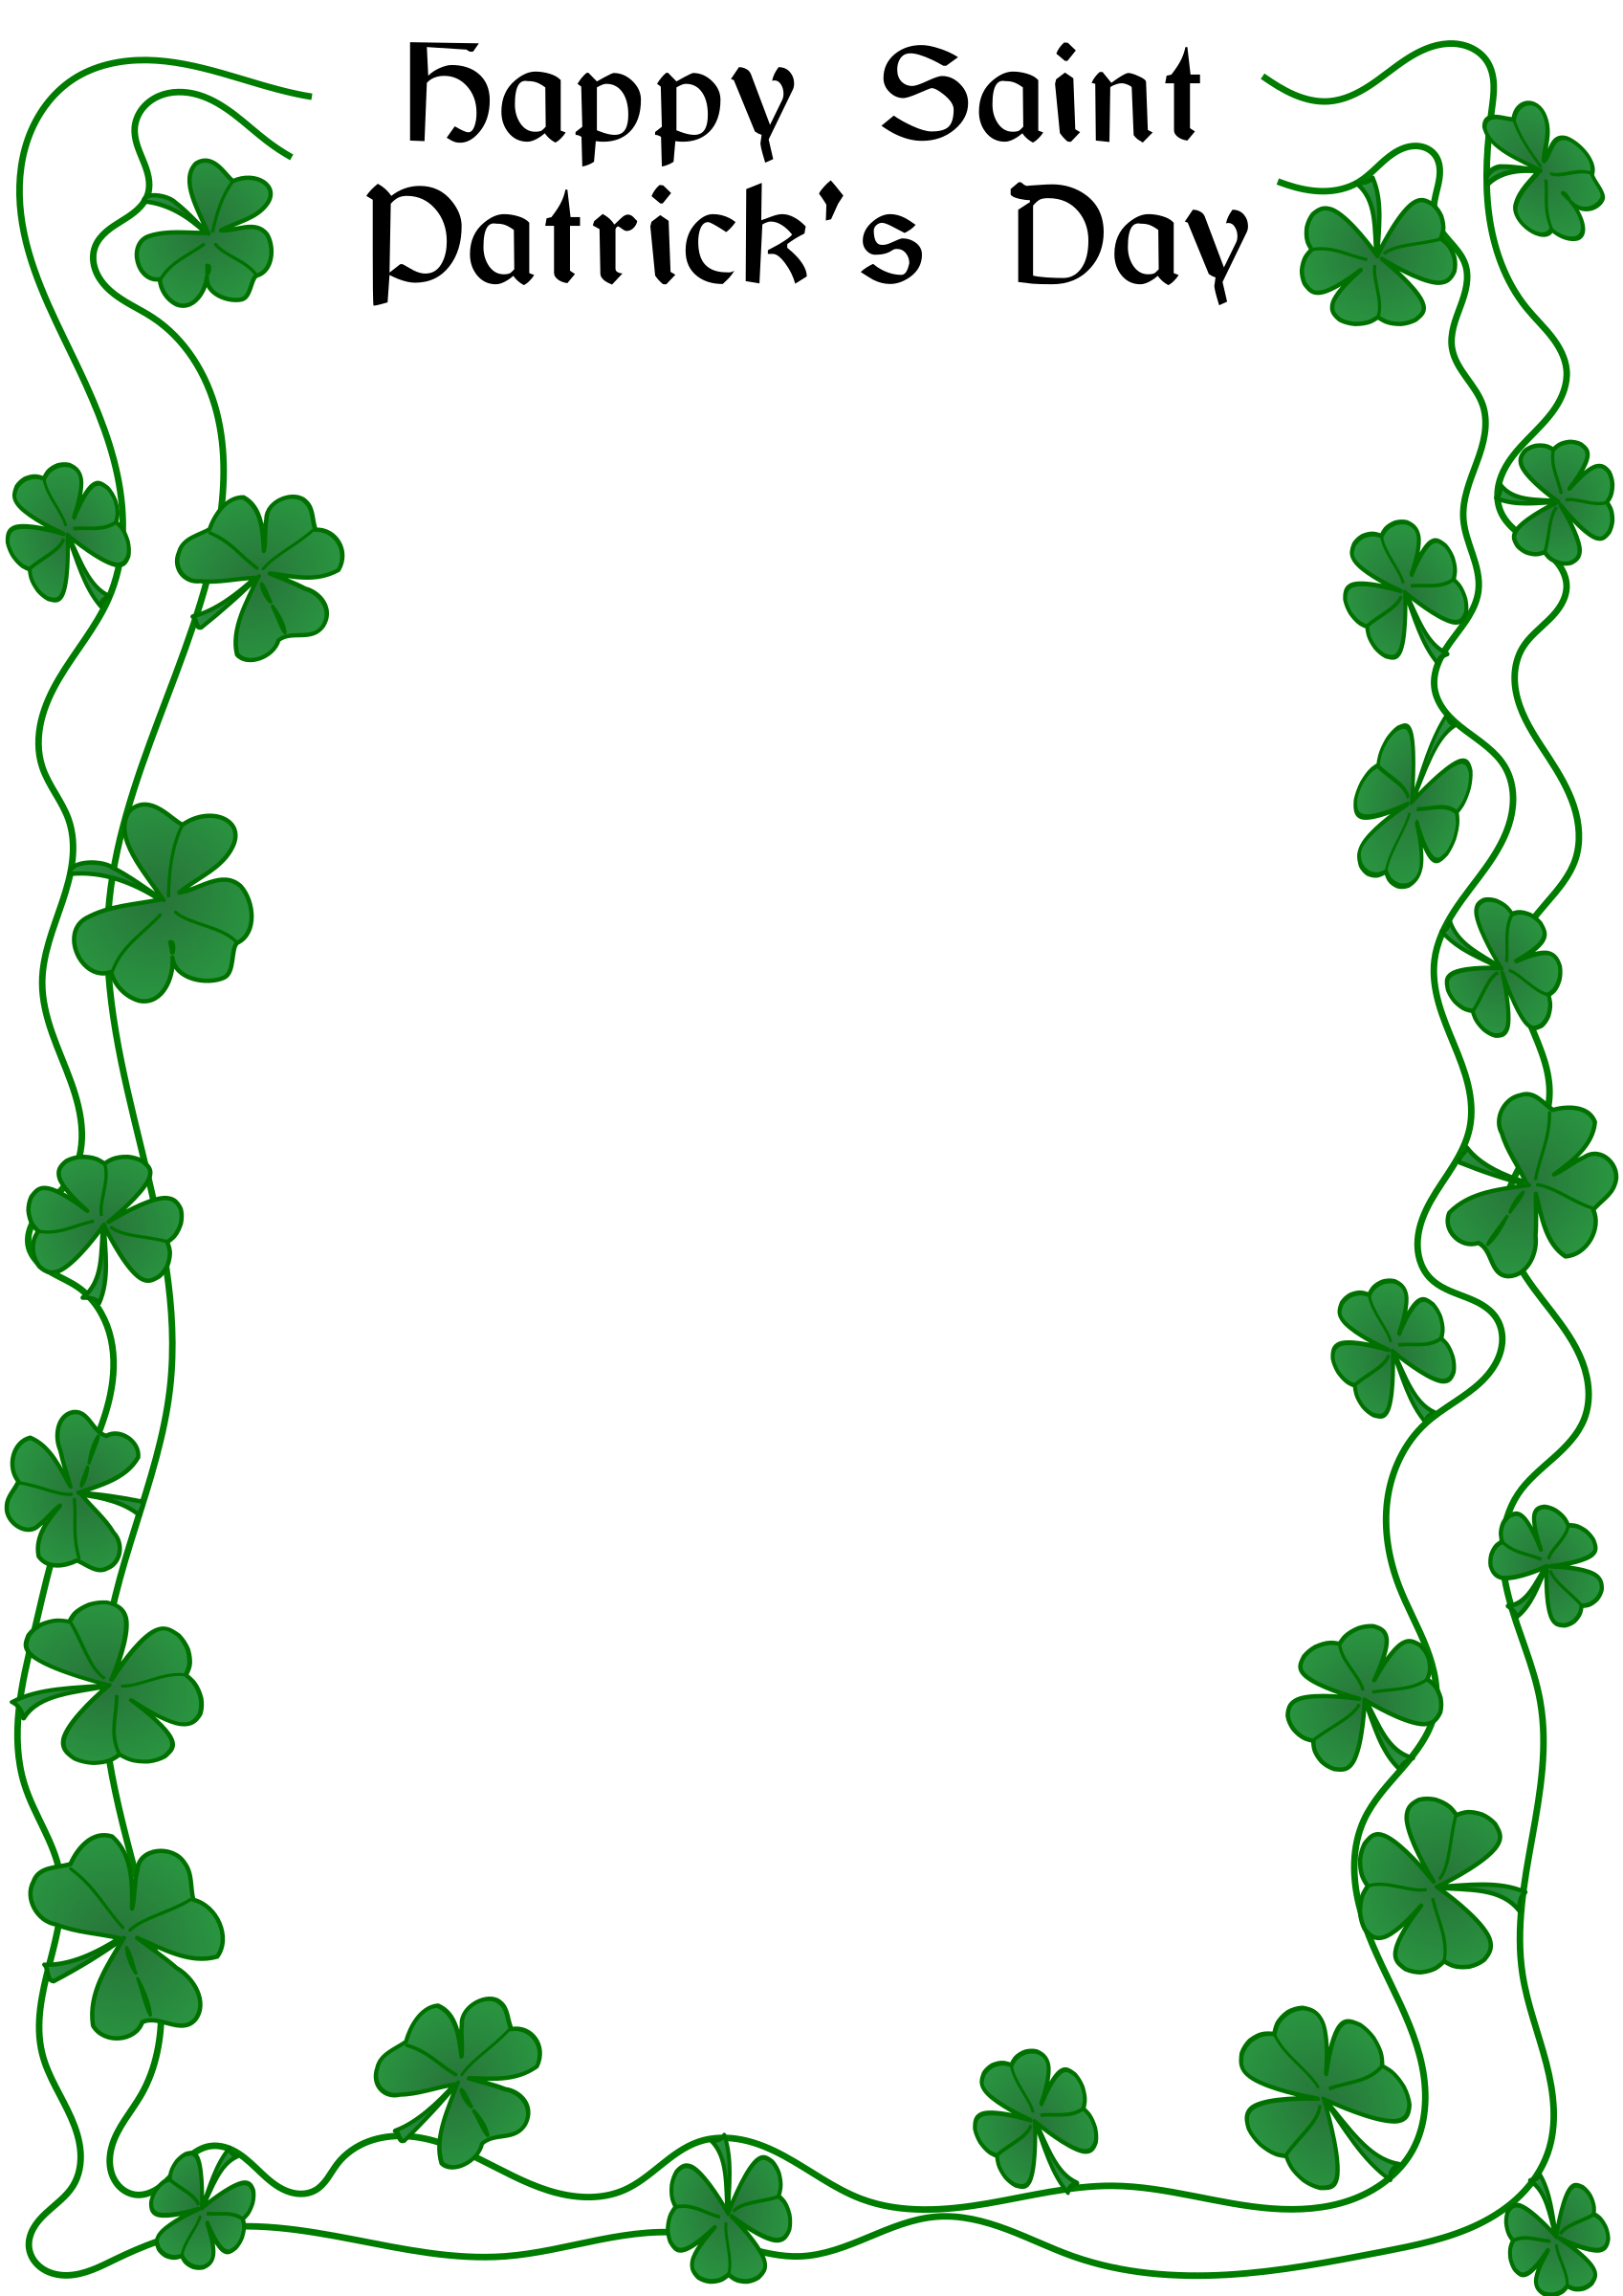 20 Free St. Patrick's Day Cards And Printable Party ... |St Patricks Border